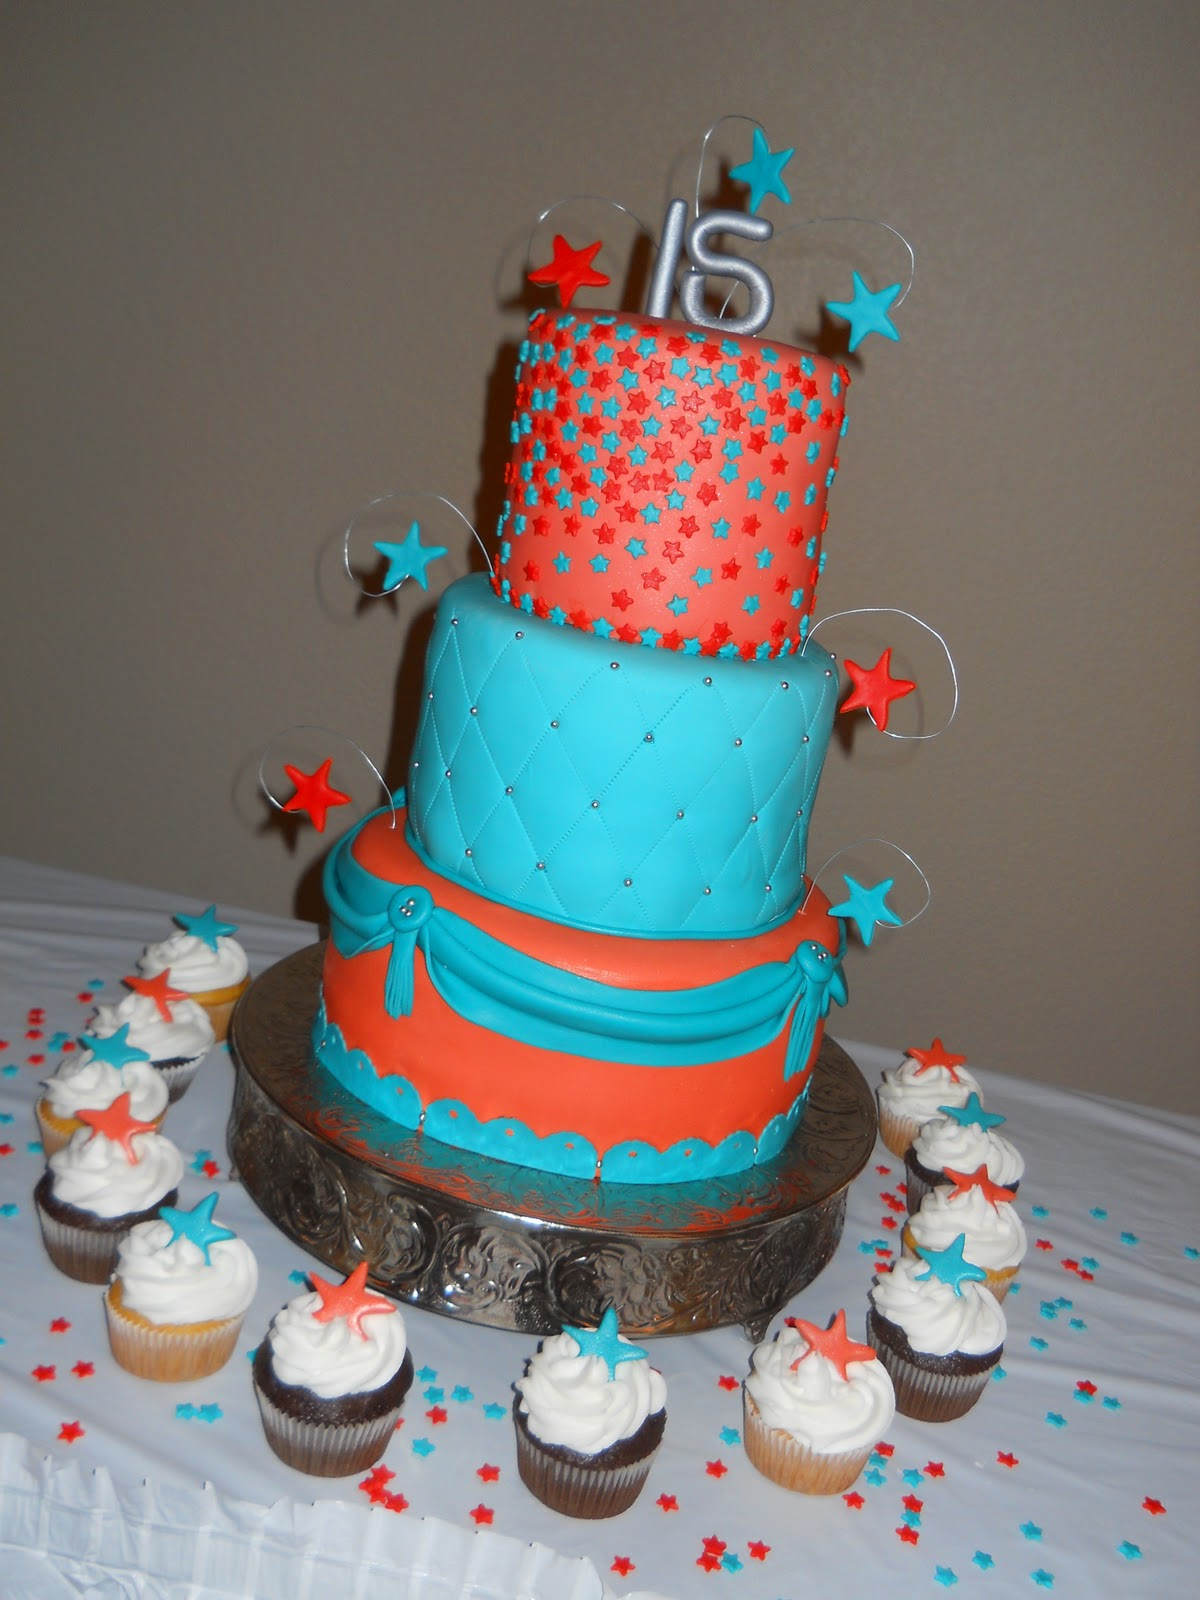 Orange and Aqua Wedding Cake http://www.sophiascakecreations.com/2010/12/orange-turquoise-quincenera-cake.html